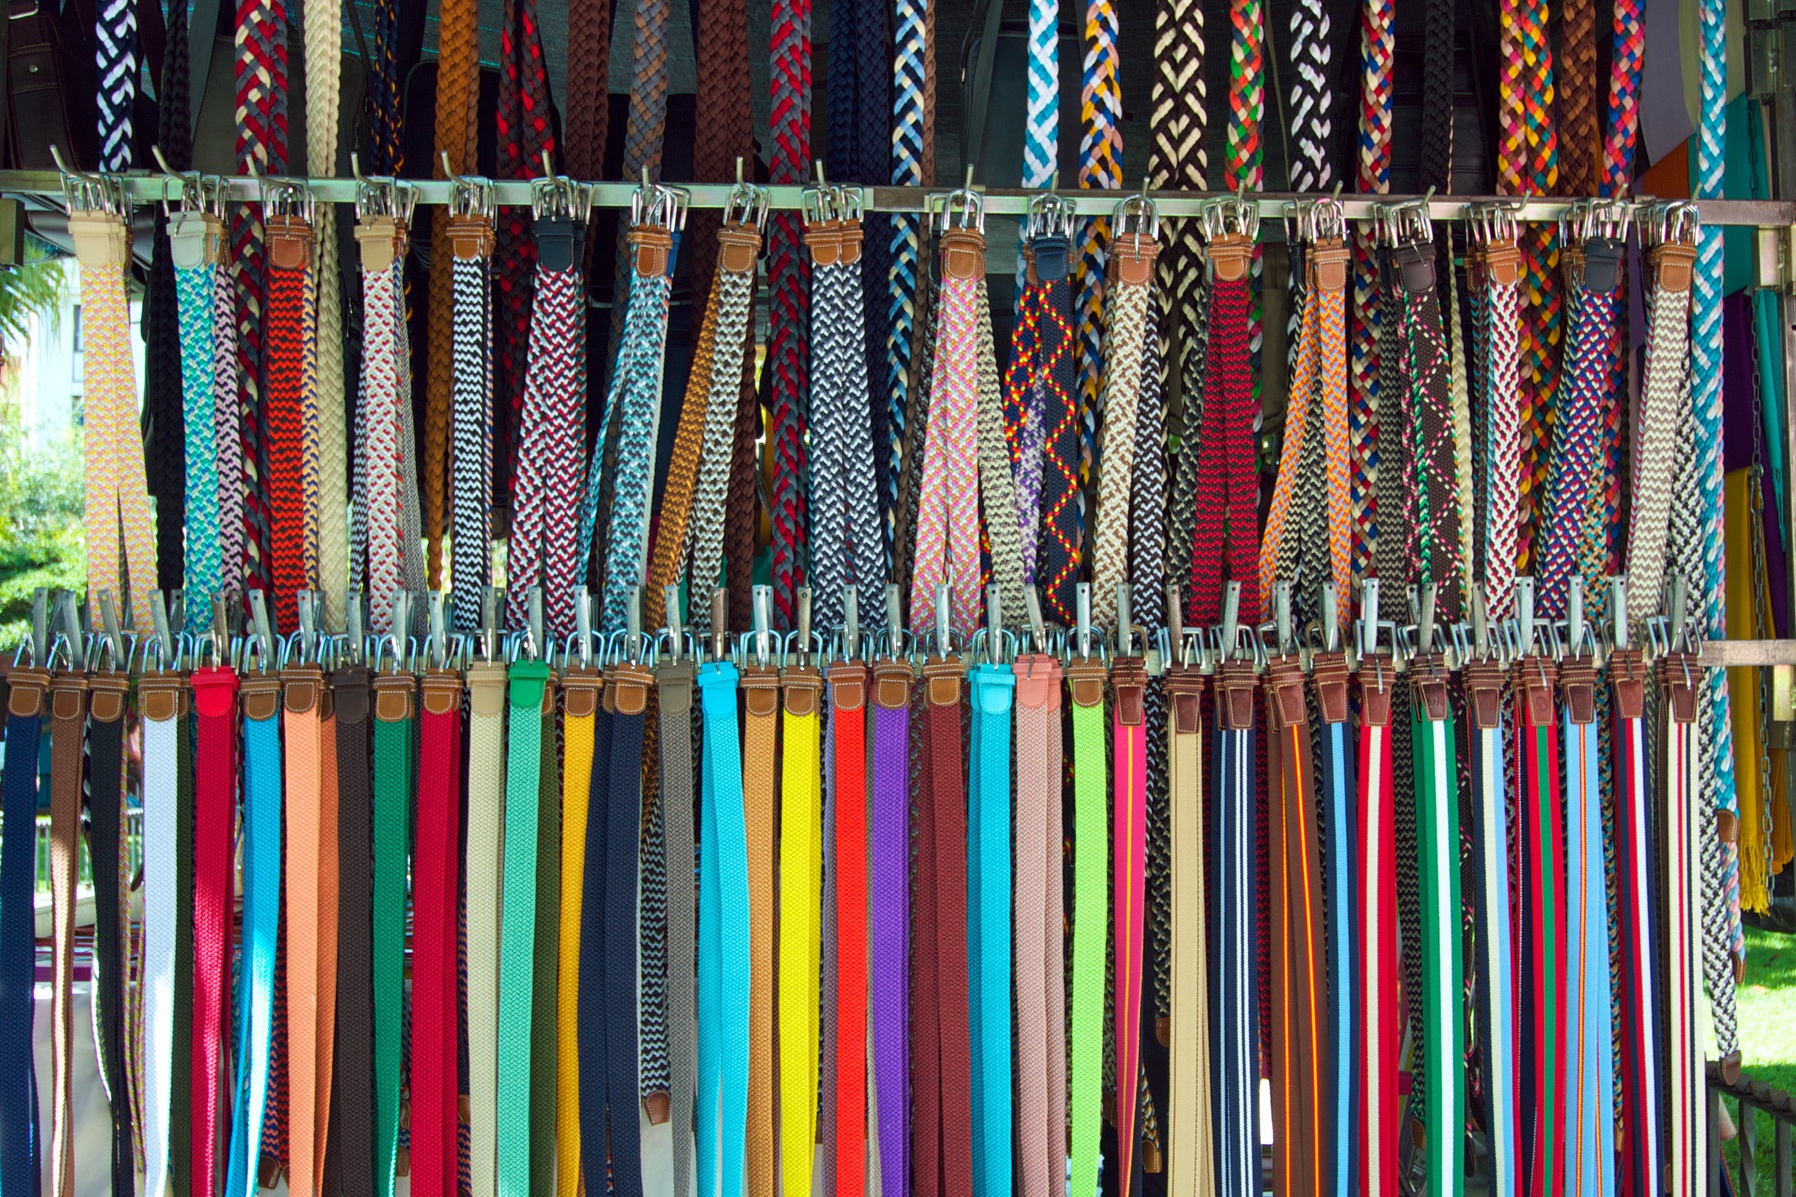 3 rows of colorful belts for sale